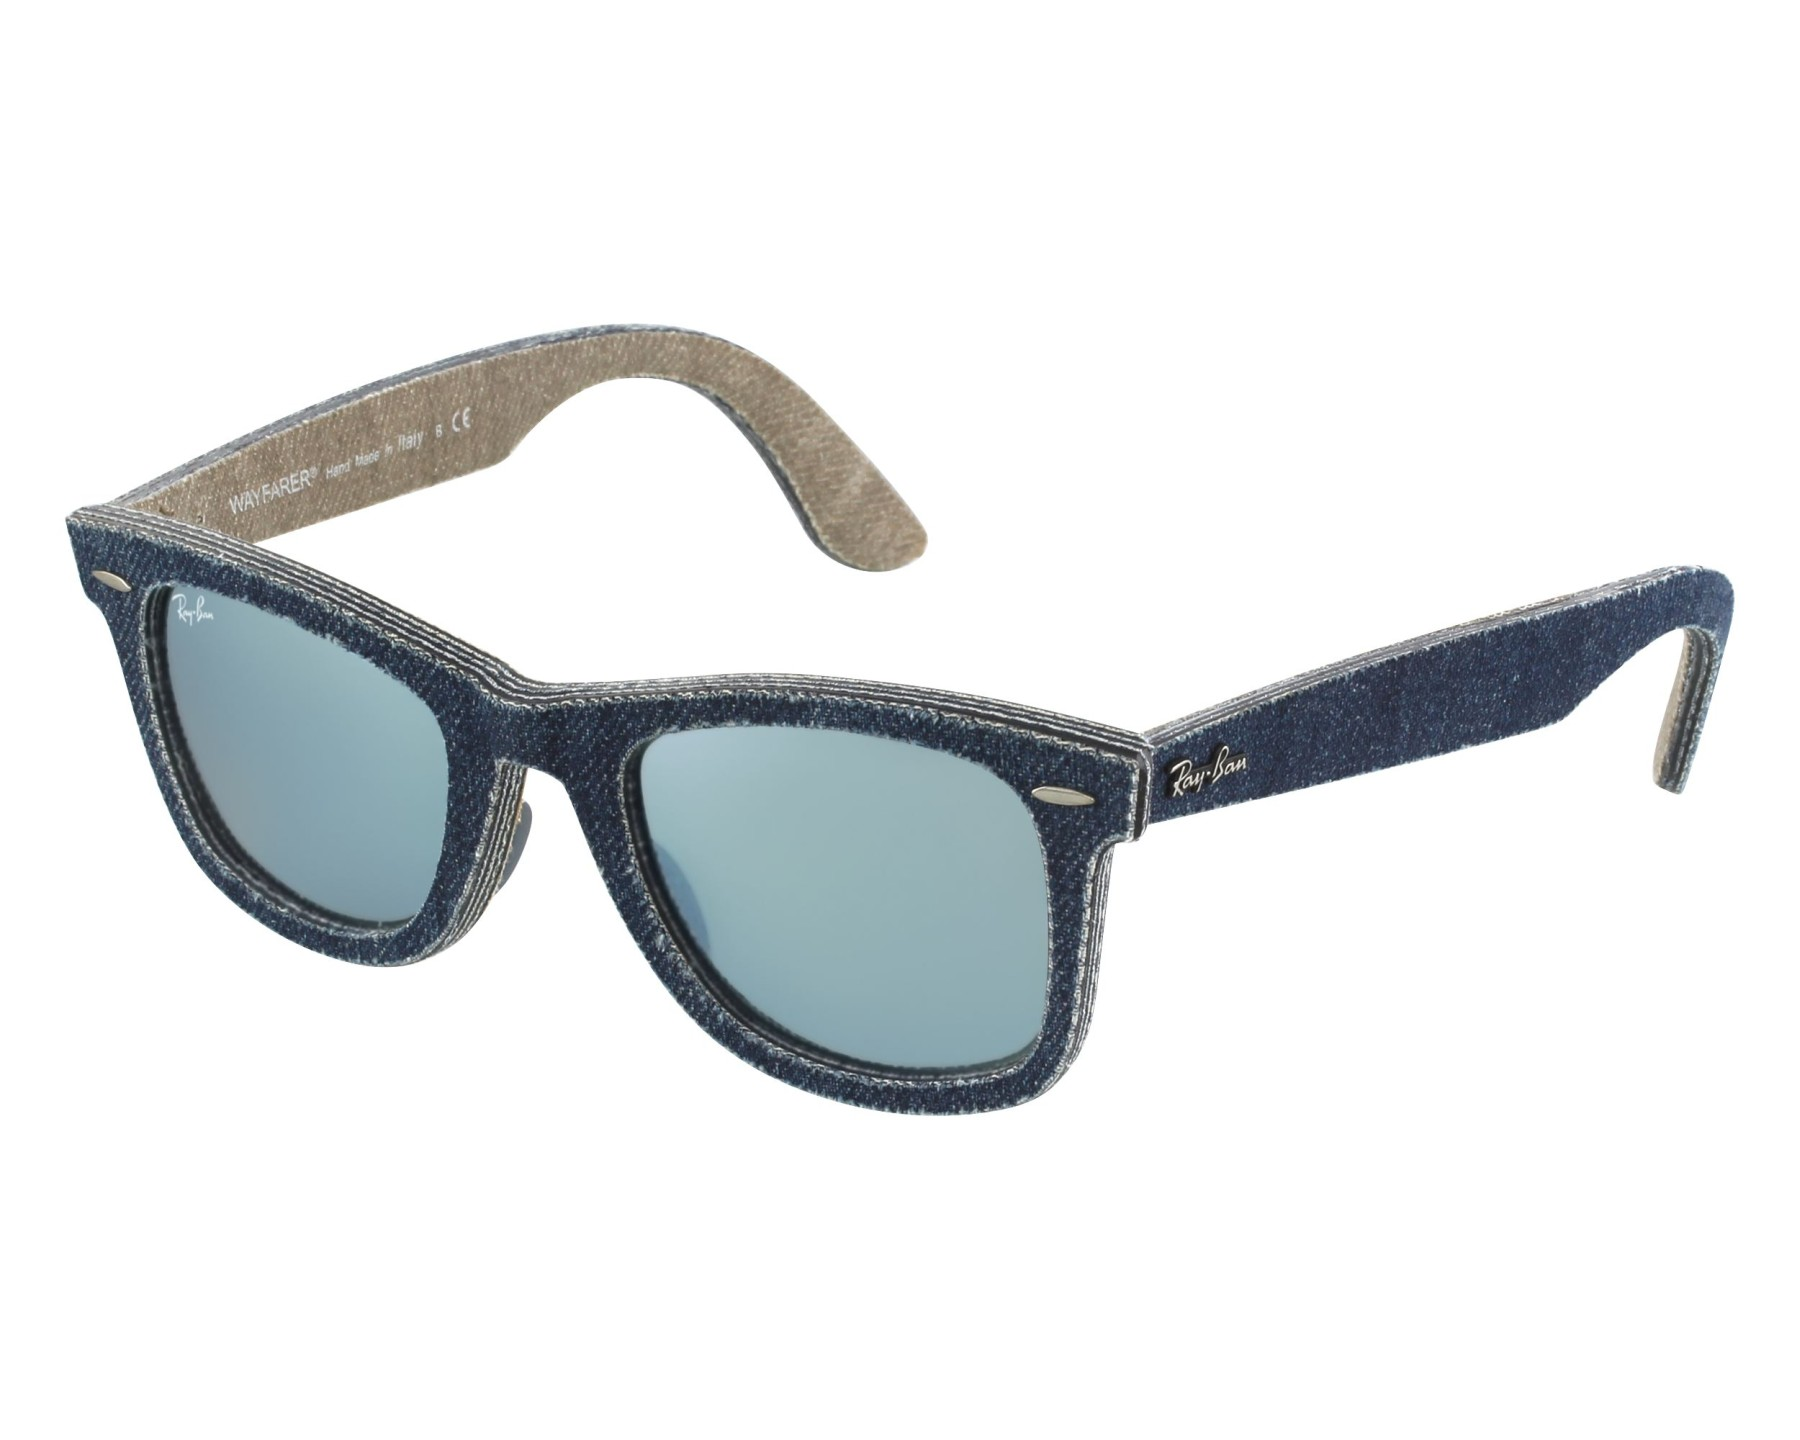 3348ee39b3 Sunglasses Ray-Ban RB-2140 119430 50-22 Blue front view